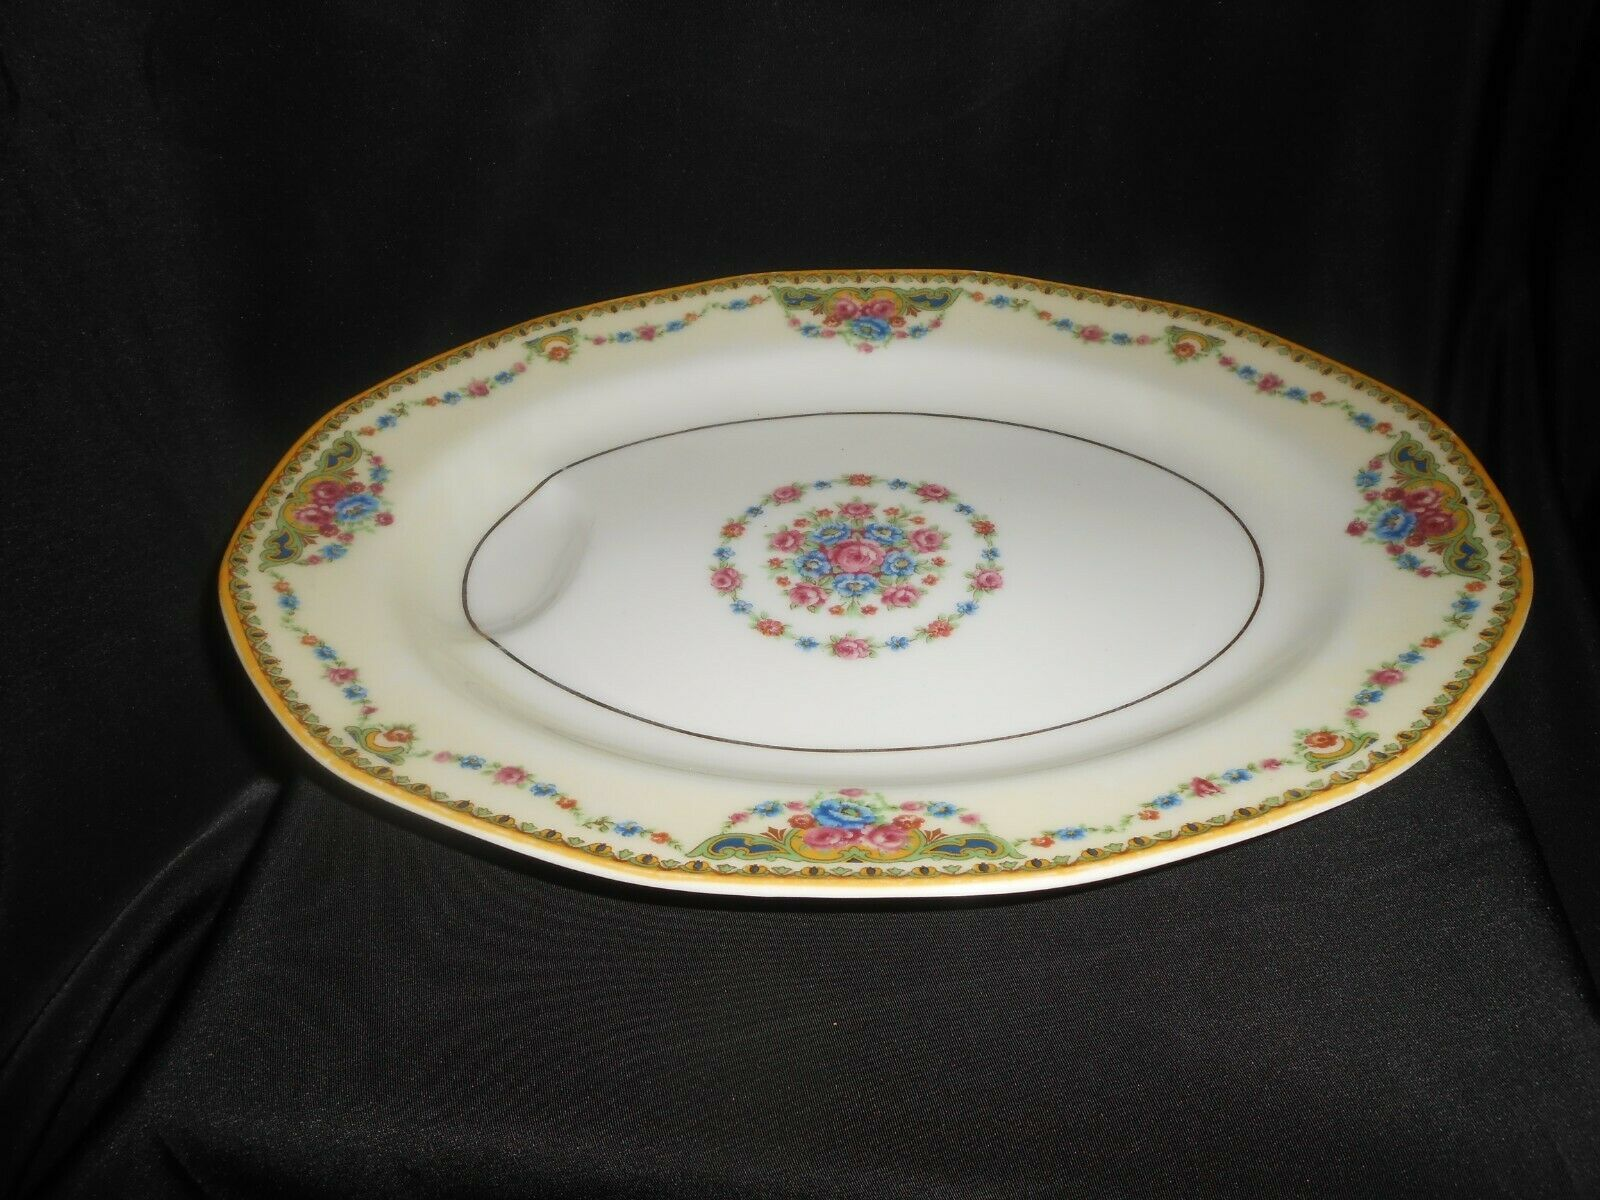 Theodore Haviland Limoges Meat Platter Tray Small Flower Swags 1920-1936